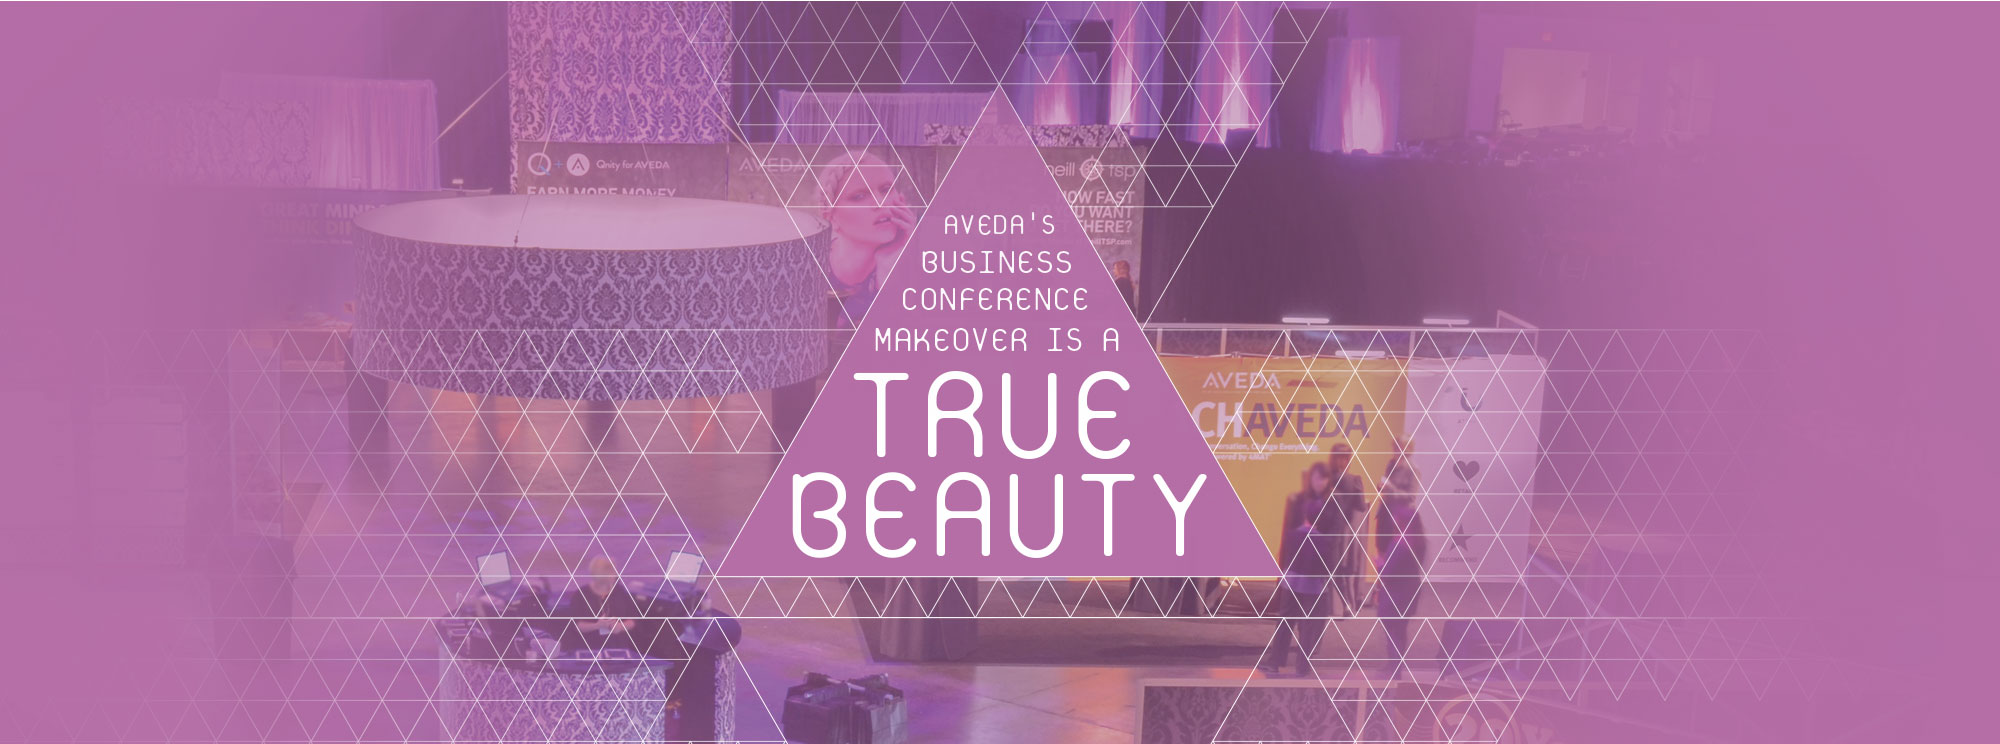 Aveda's business conference makeover is a true beauty.